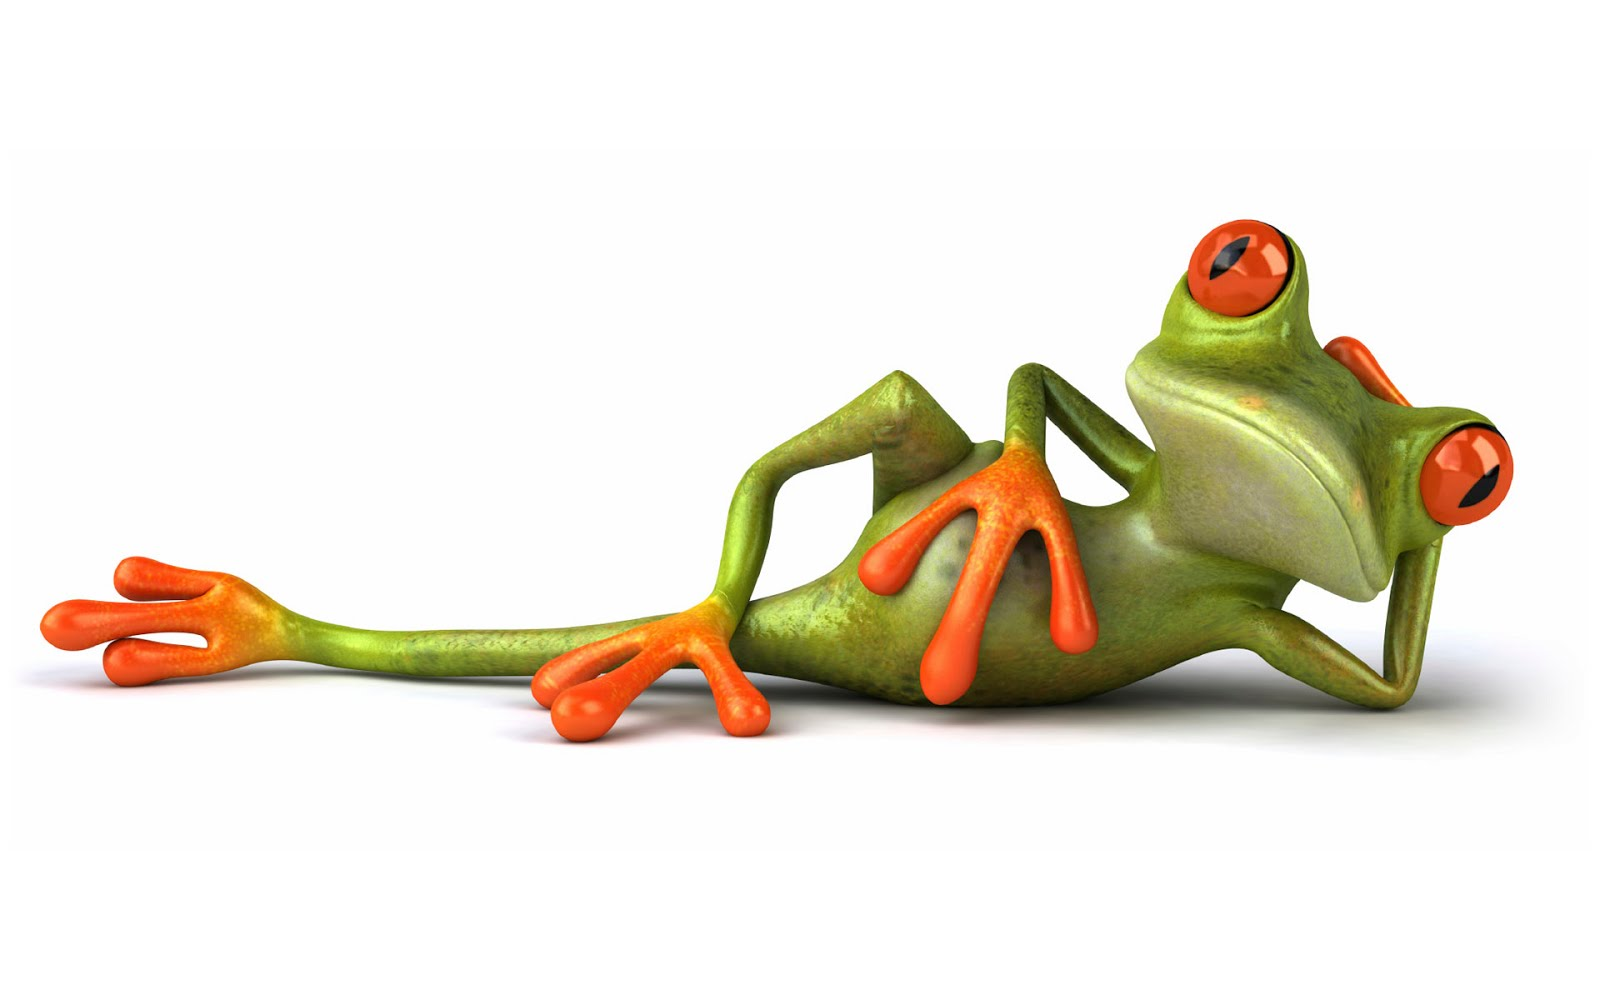 Cartoon frogs wallpaper cartoon images - Frog cartoon wallpaper ...